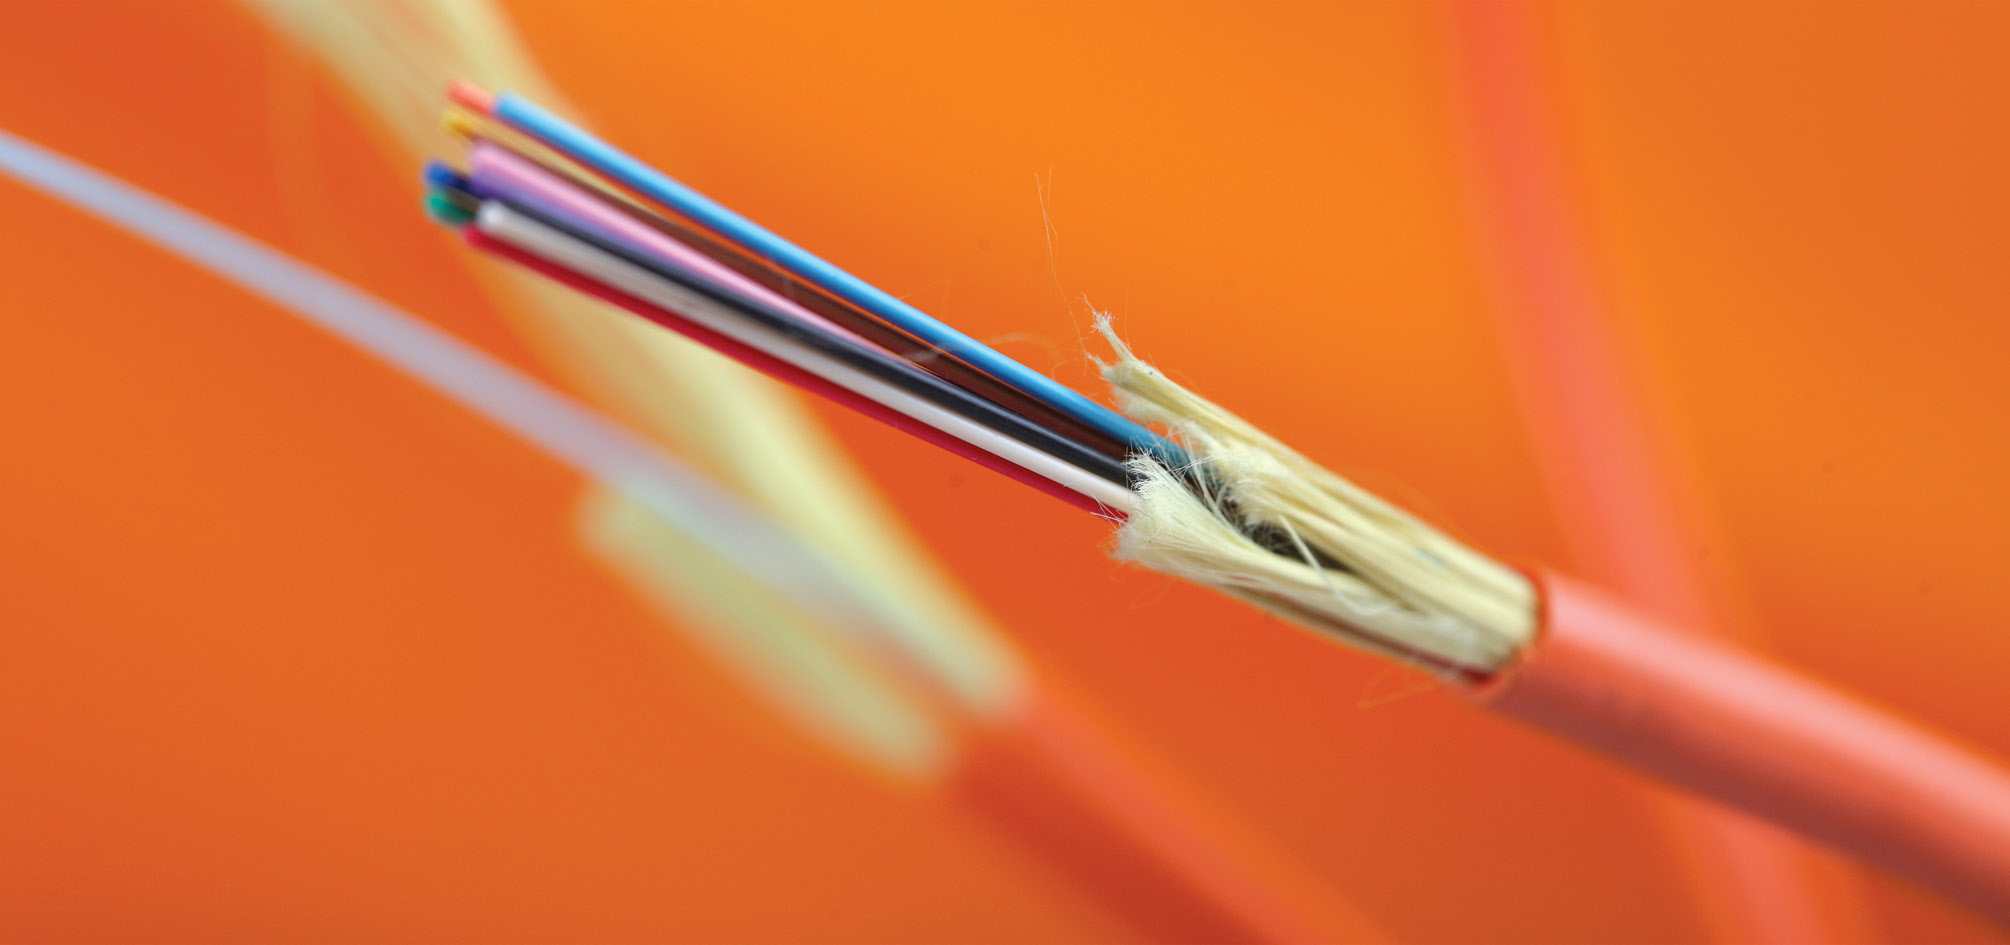 tight-buffer-indoor-fiber-optic-cable